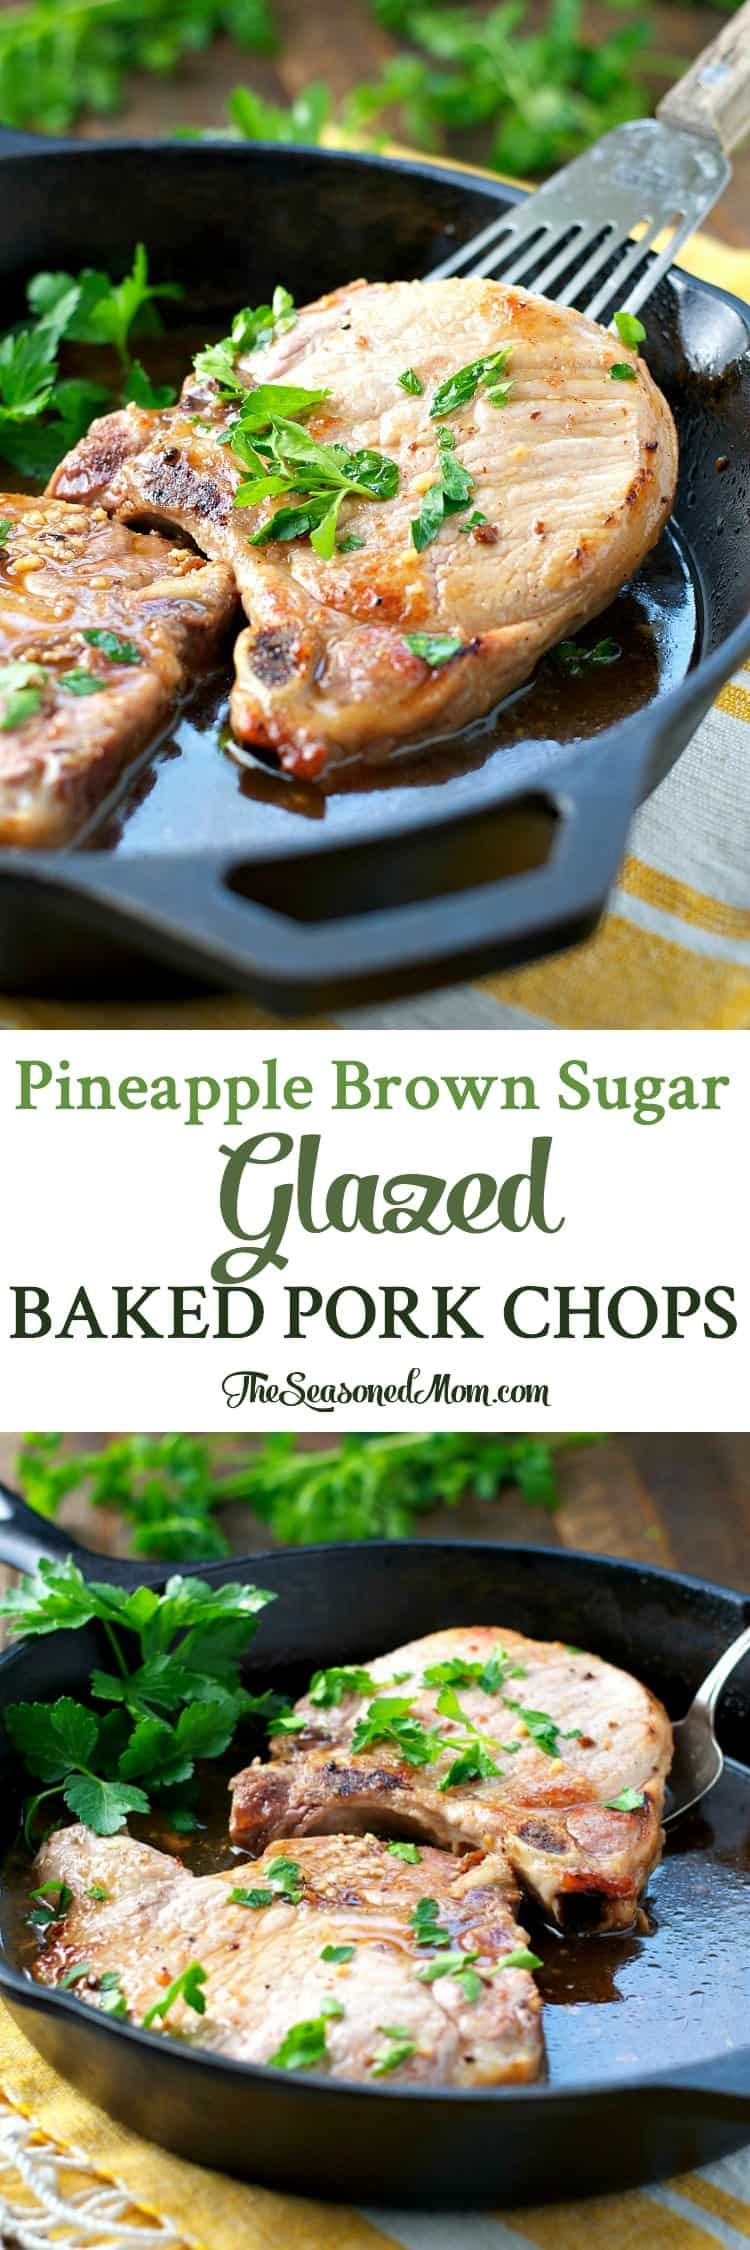 With just 5 minutes of prep, these Pineapple Brown Sugar Glazed Baked Pork Chops are an easy dinner that's ready in less than 30 minutes!